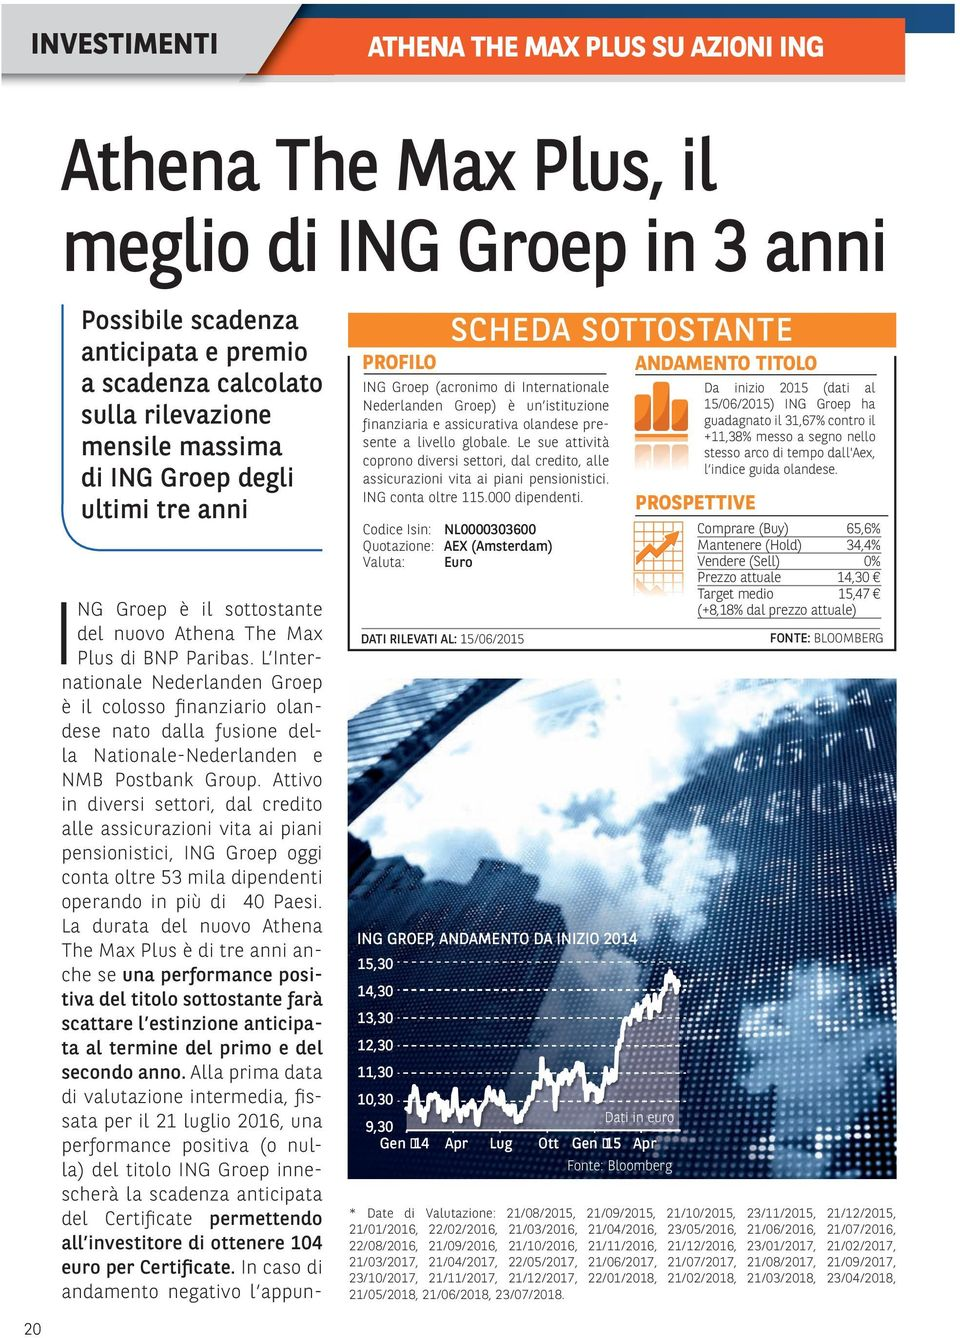 L Internationale Nederlanden Groep è il colosso finanziario olandese nato dalla fusione della Nationale-Nederlanden e NMB Postbank Group.